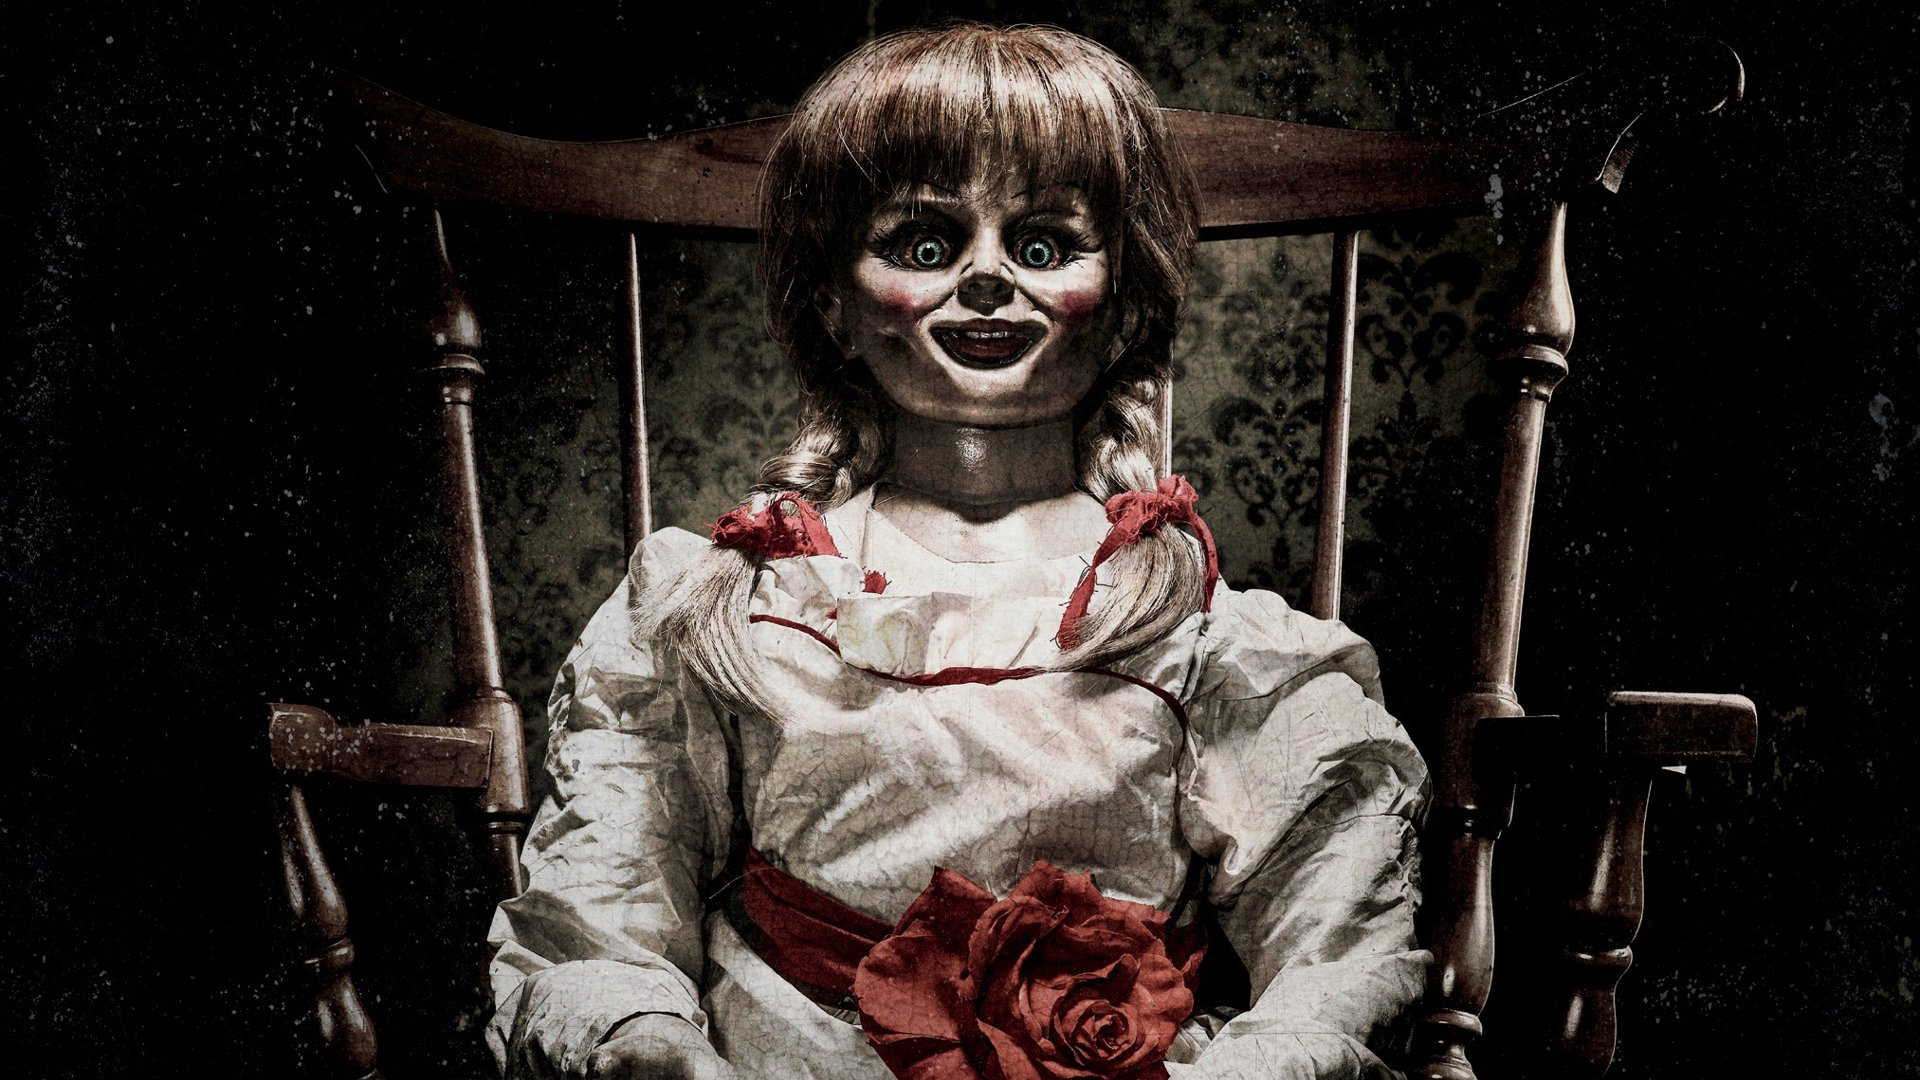 Annabelle - Release Date and Director Announced For ANNABELLE 3